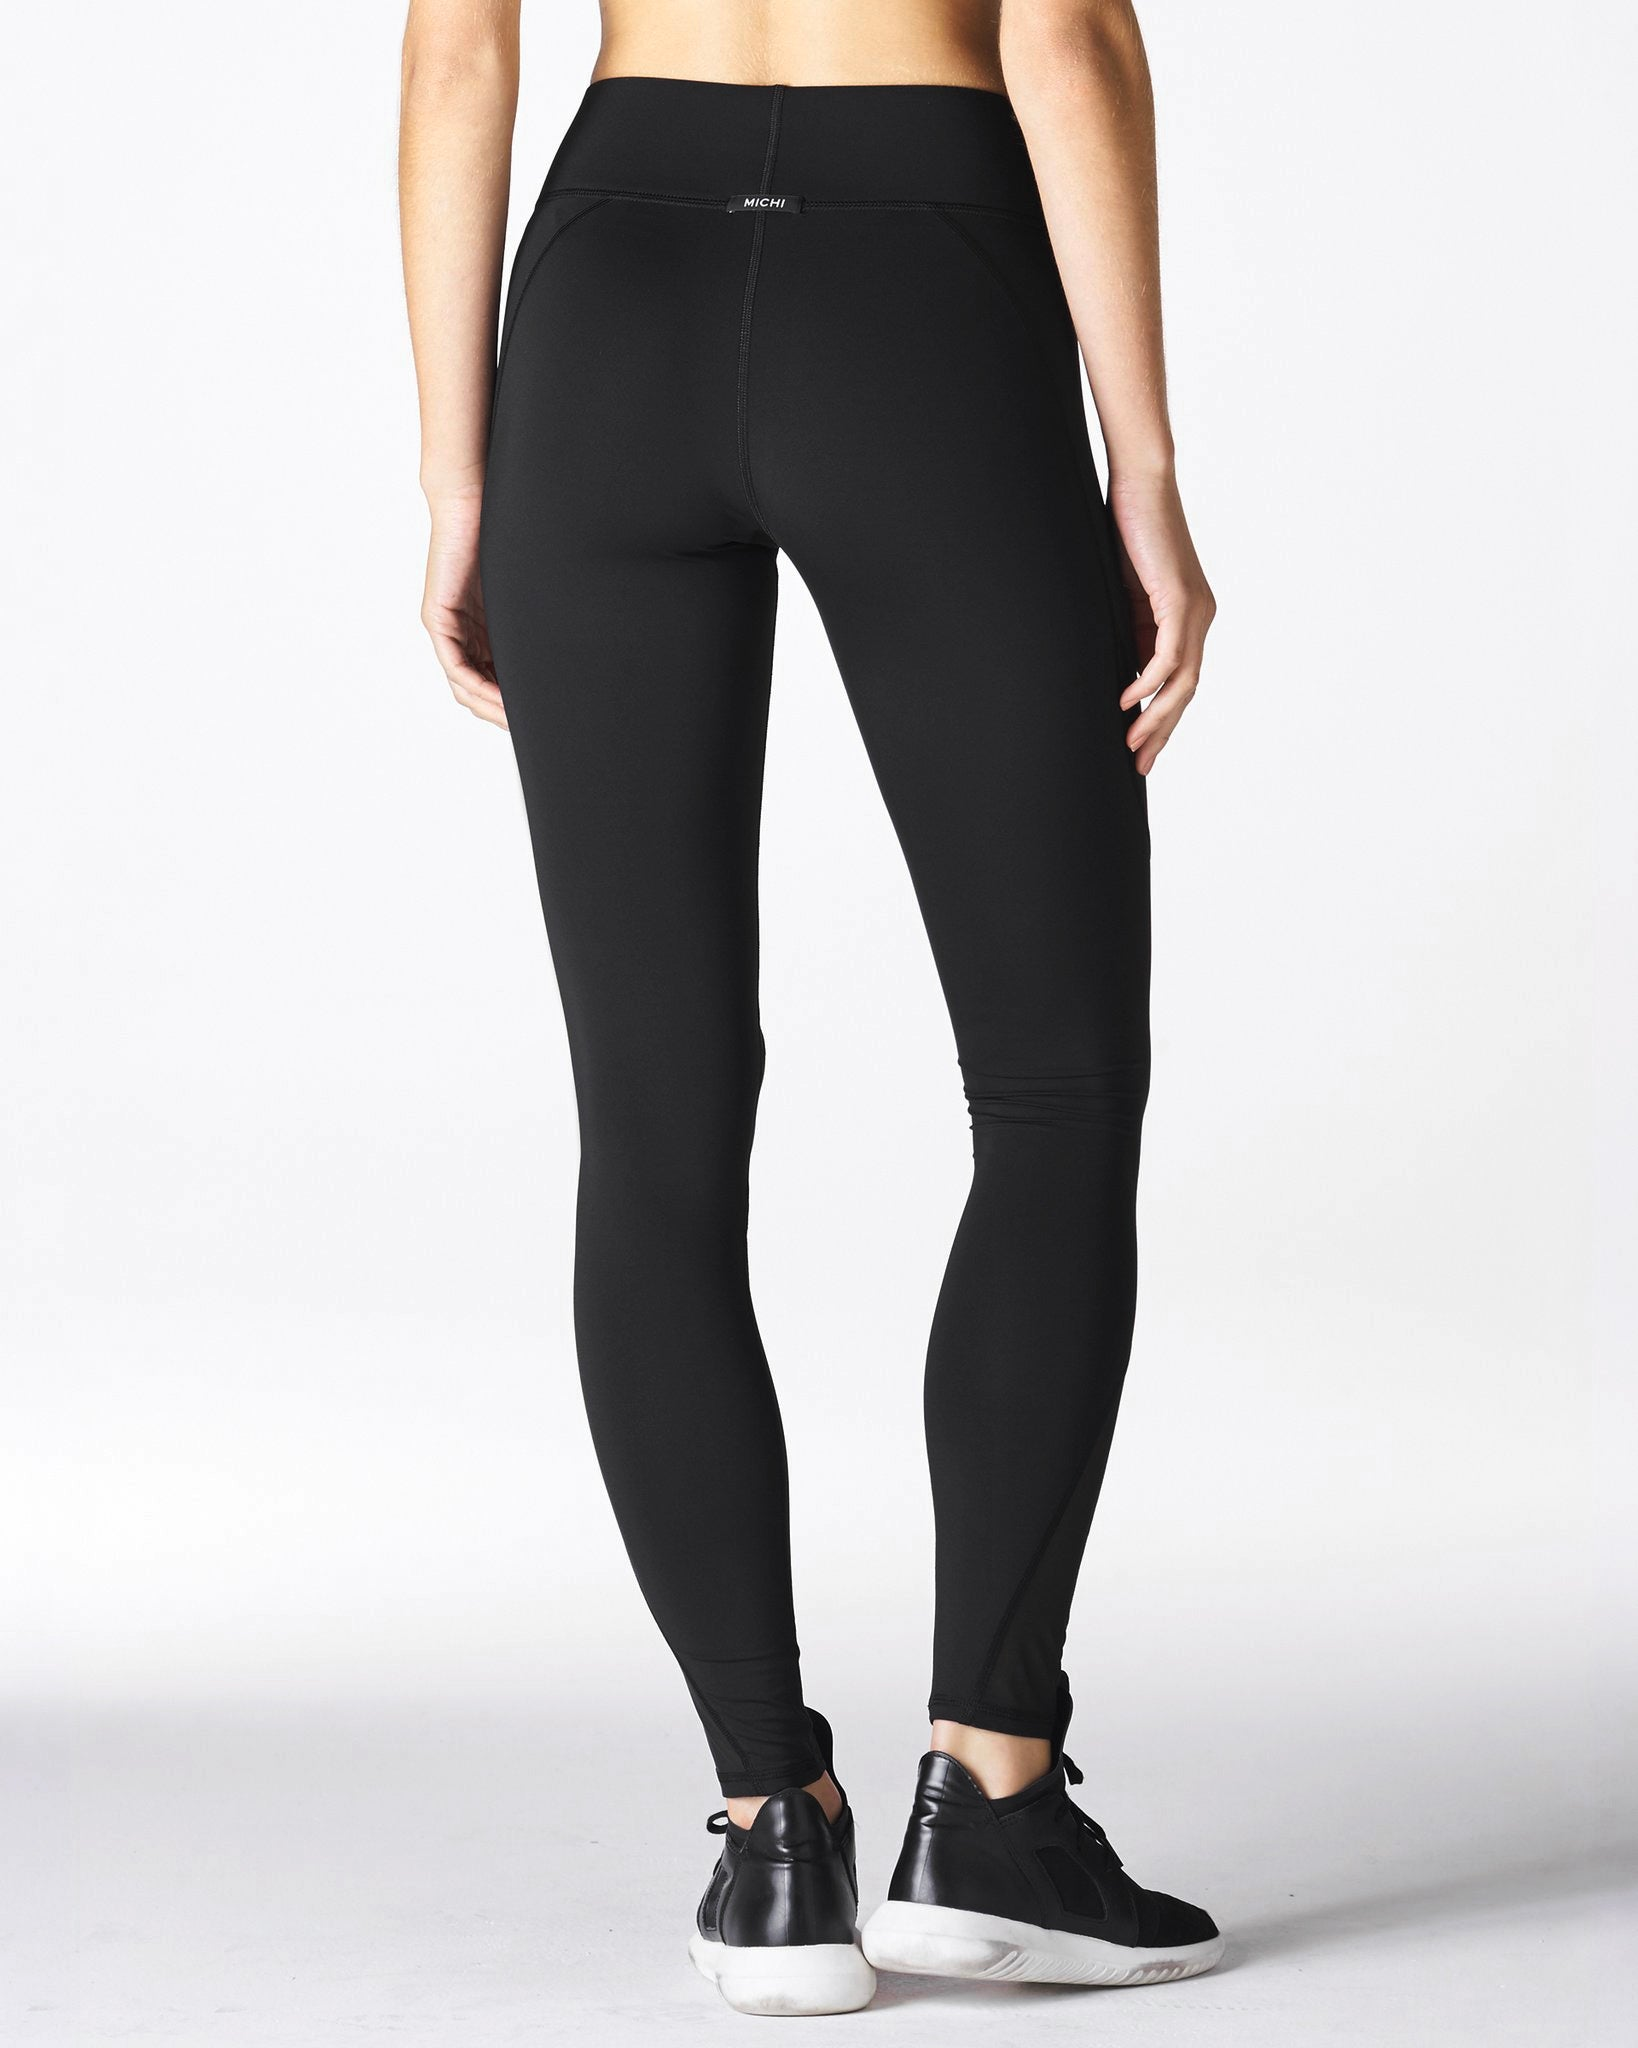 Suprastelle Legging - Black